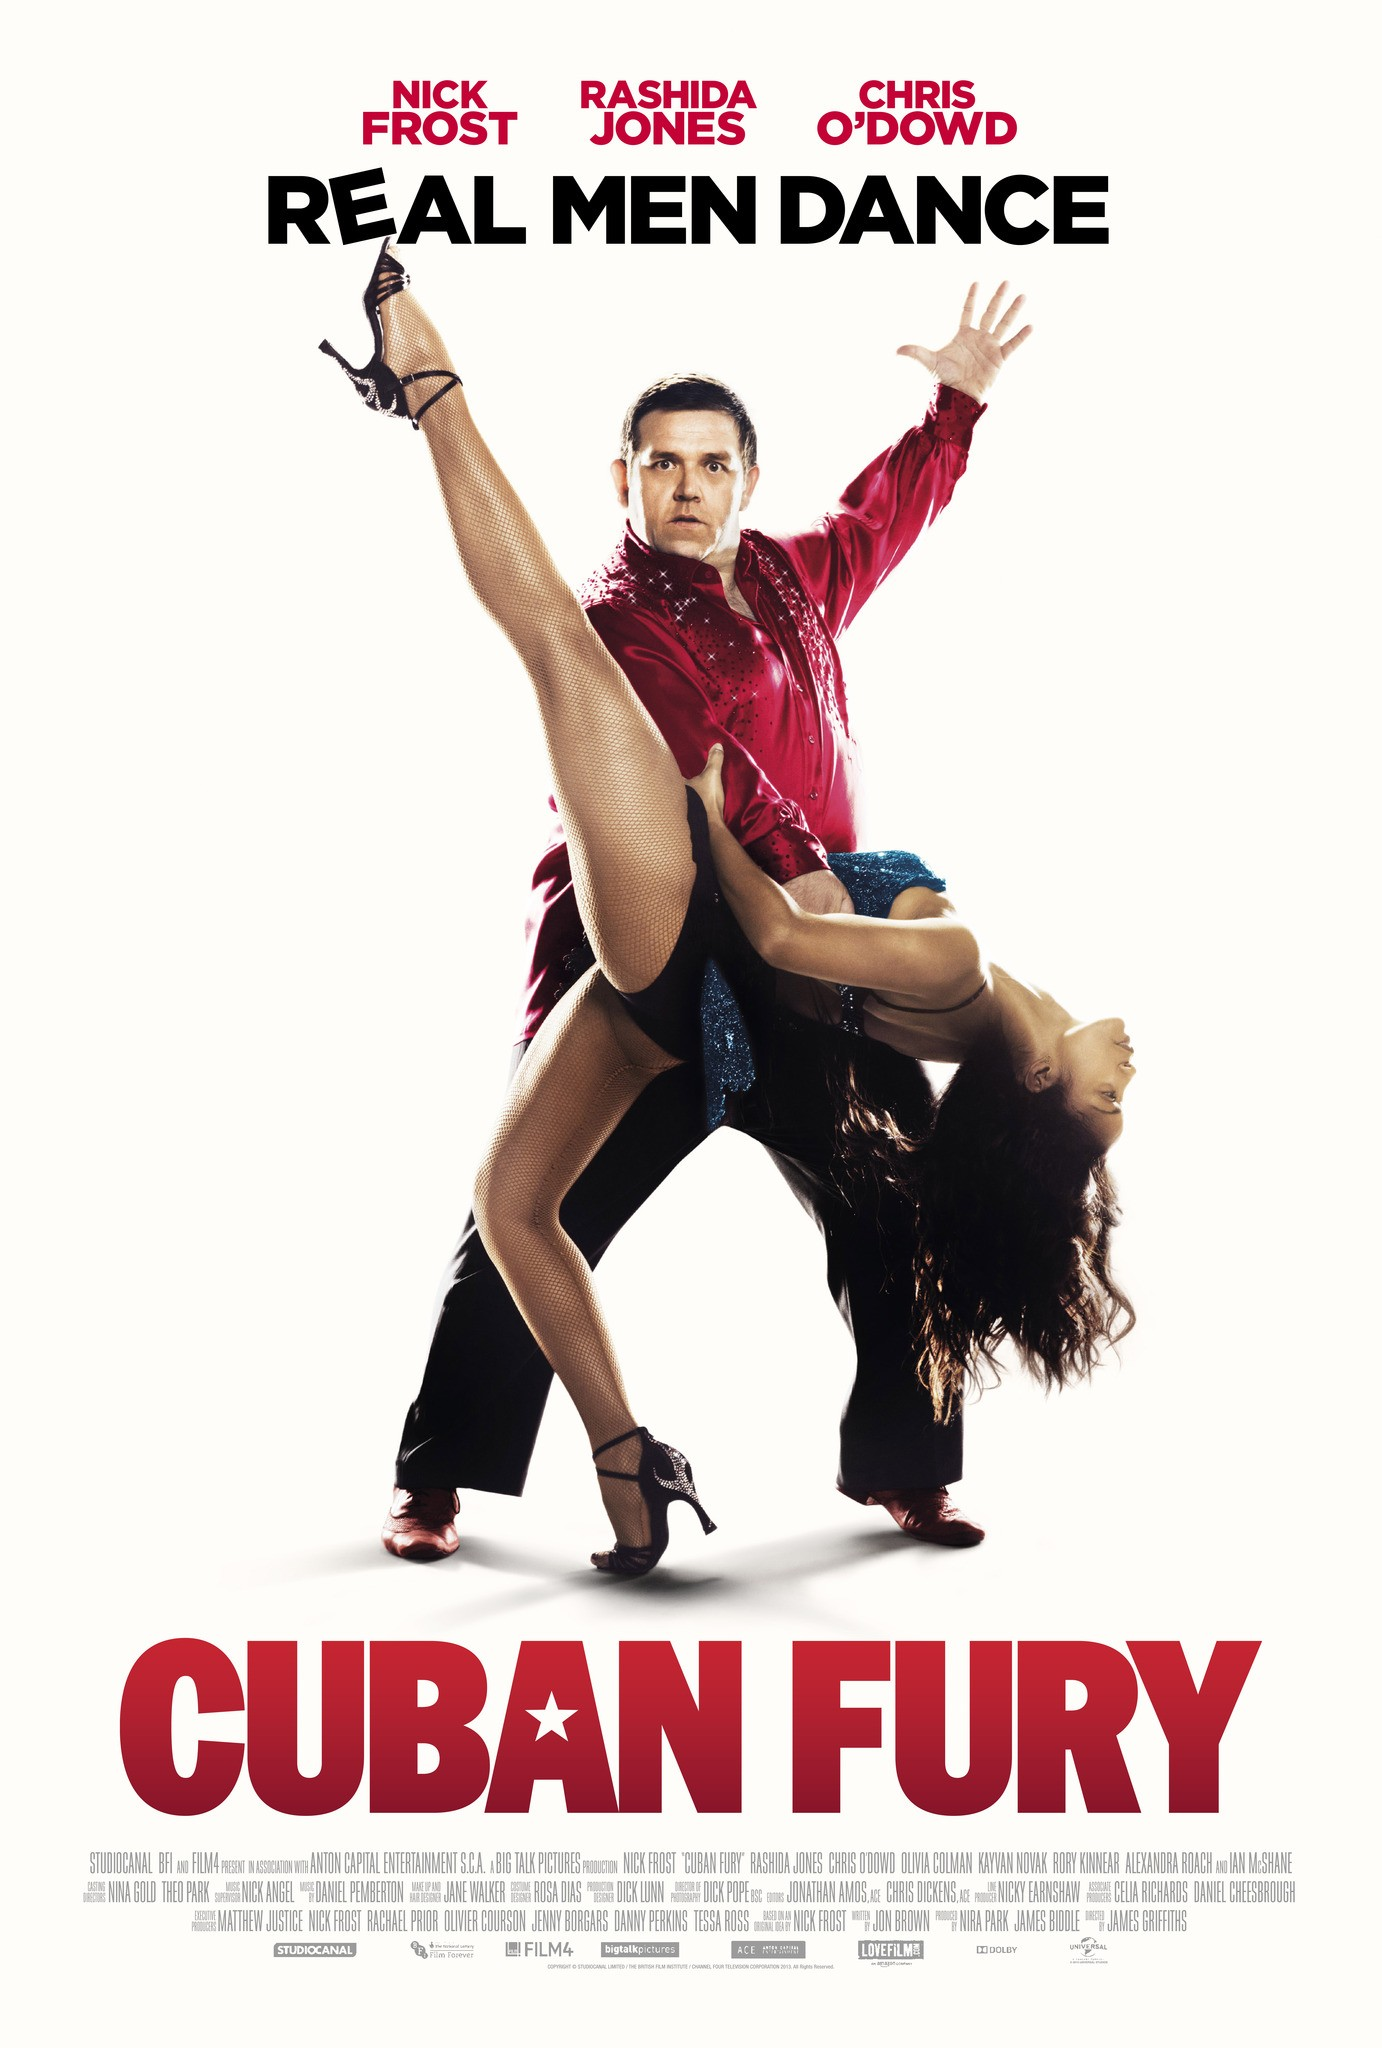 CUBAN FURY-Official Poster Banner PROMO XXLG-13MARCO2014